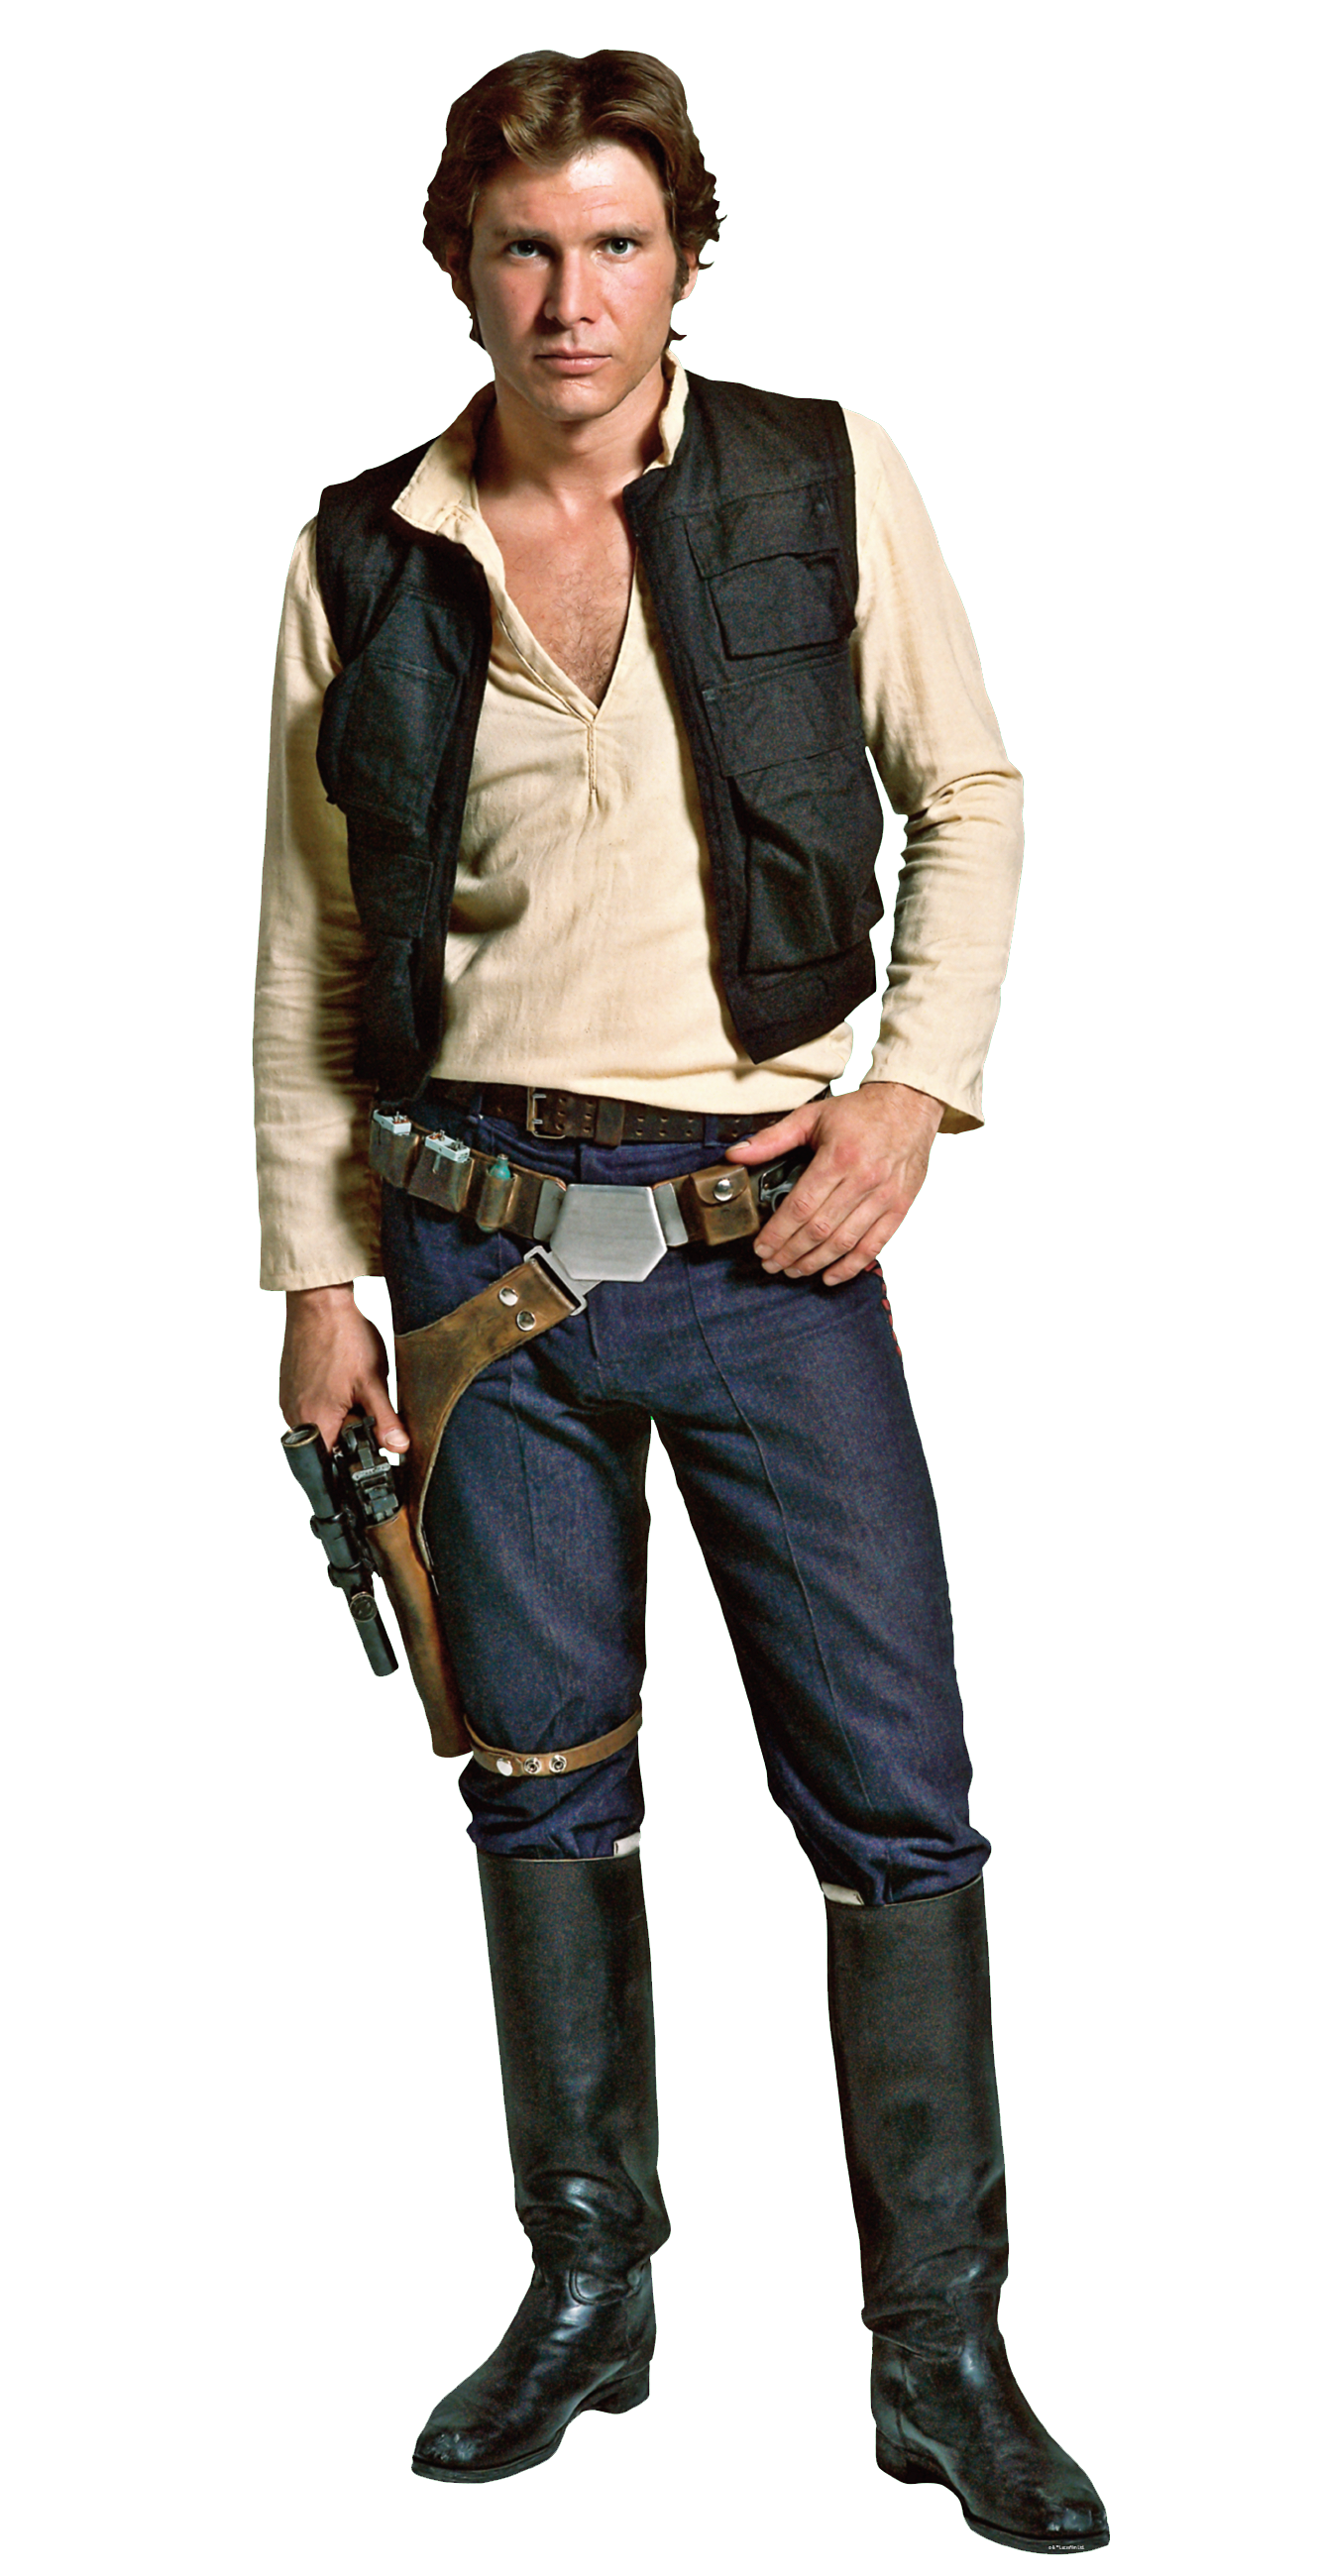 HanSolo-Fathead.png - Han Solo PNG